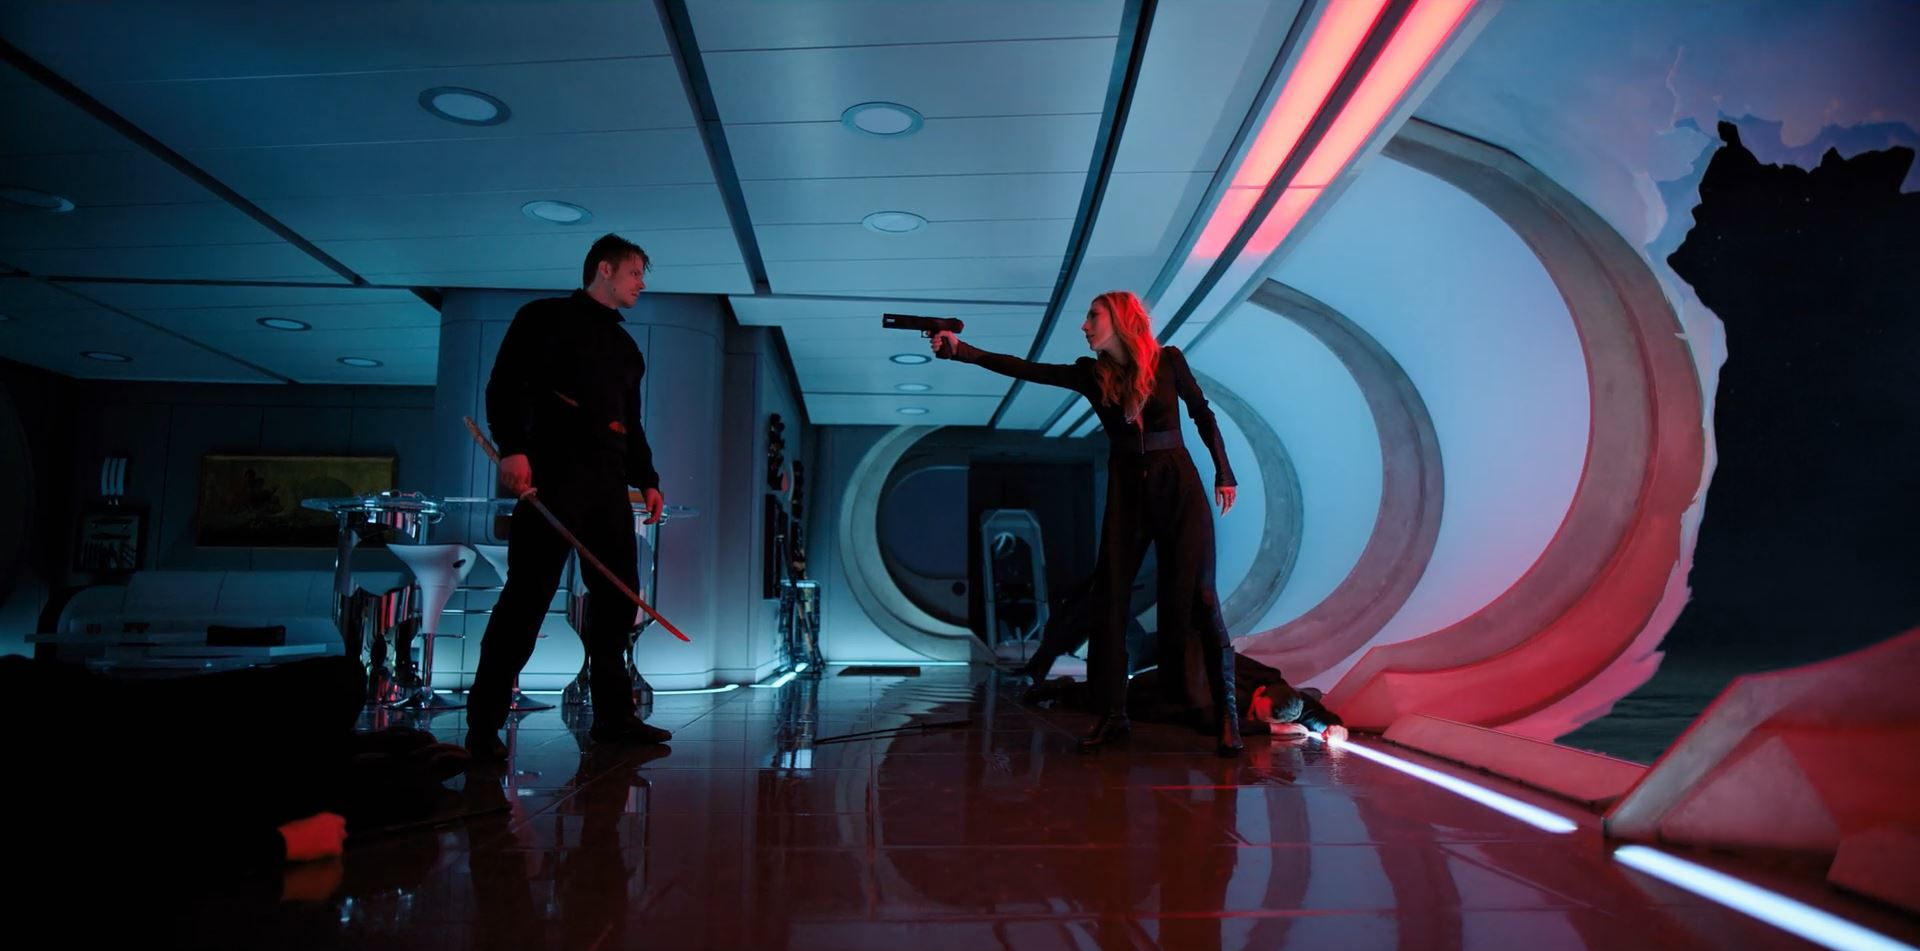 Altered Carbon - Kovacs confronting Reileen